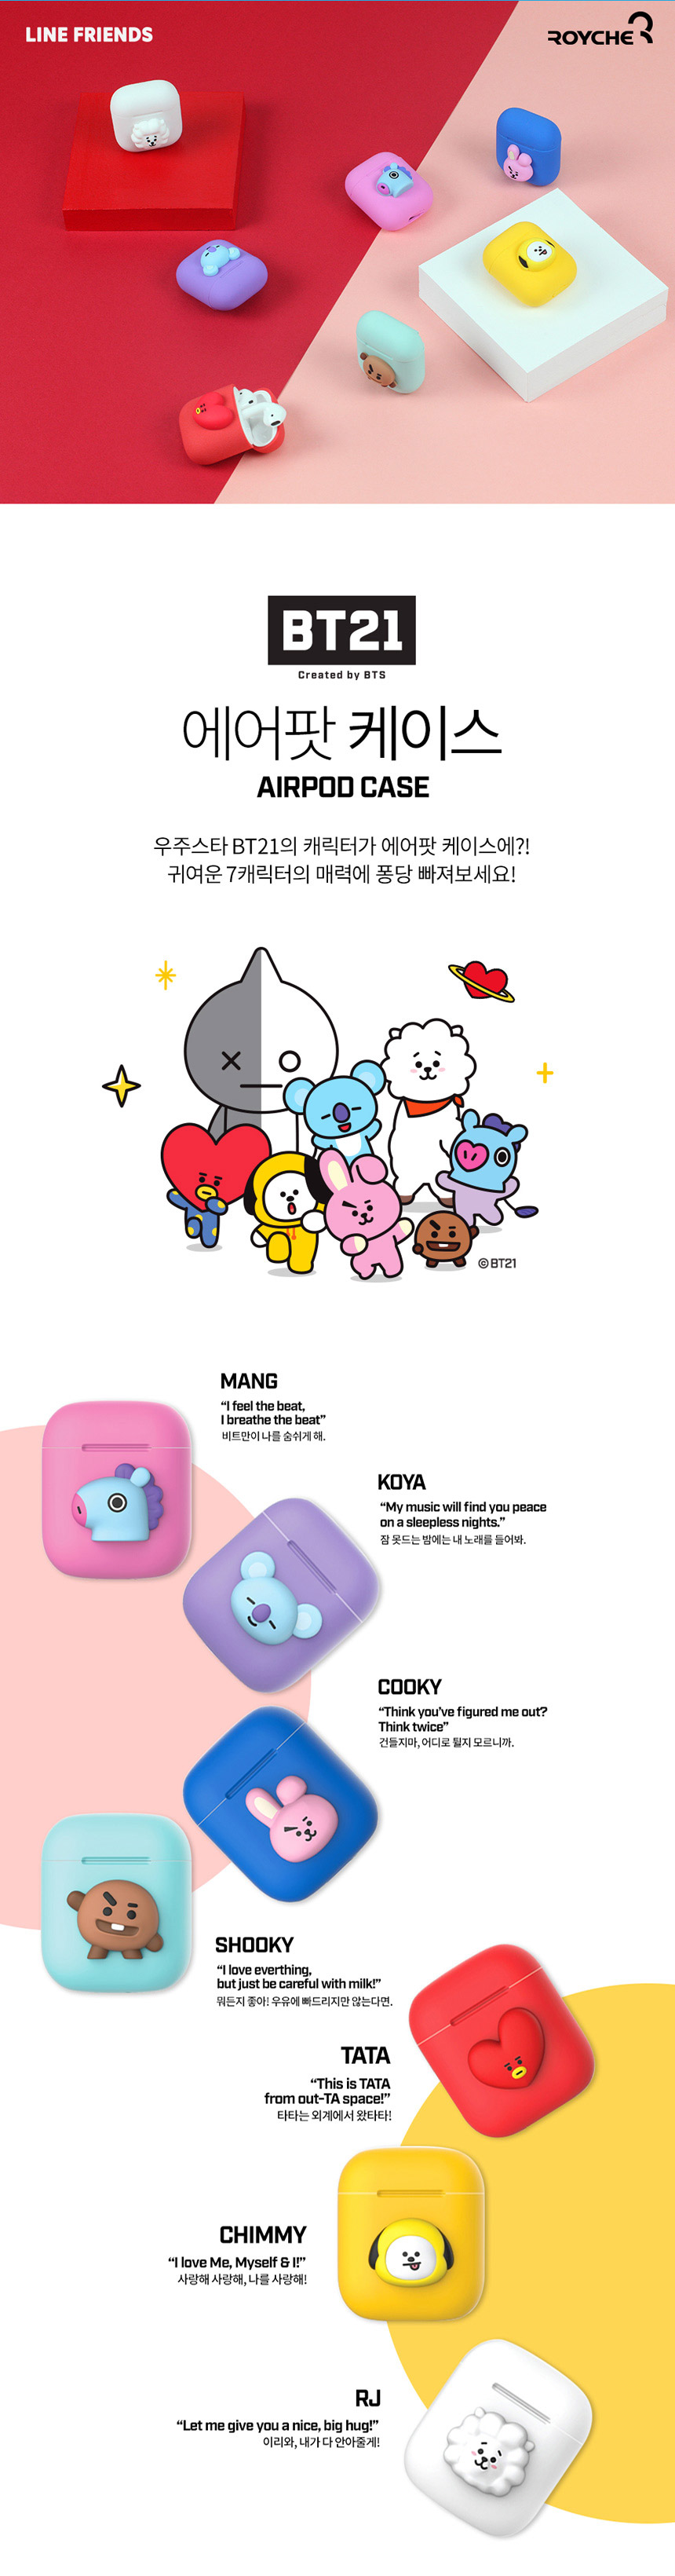 bt21_royche_airpodcase_01.jpg